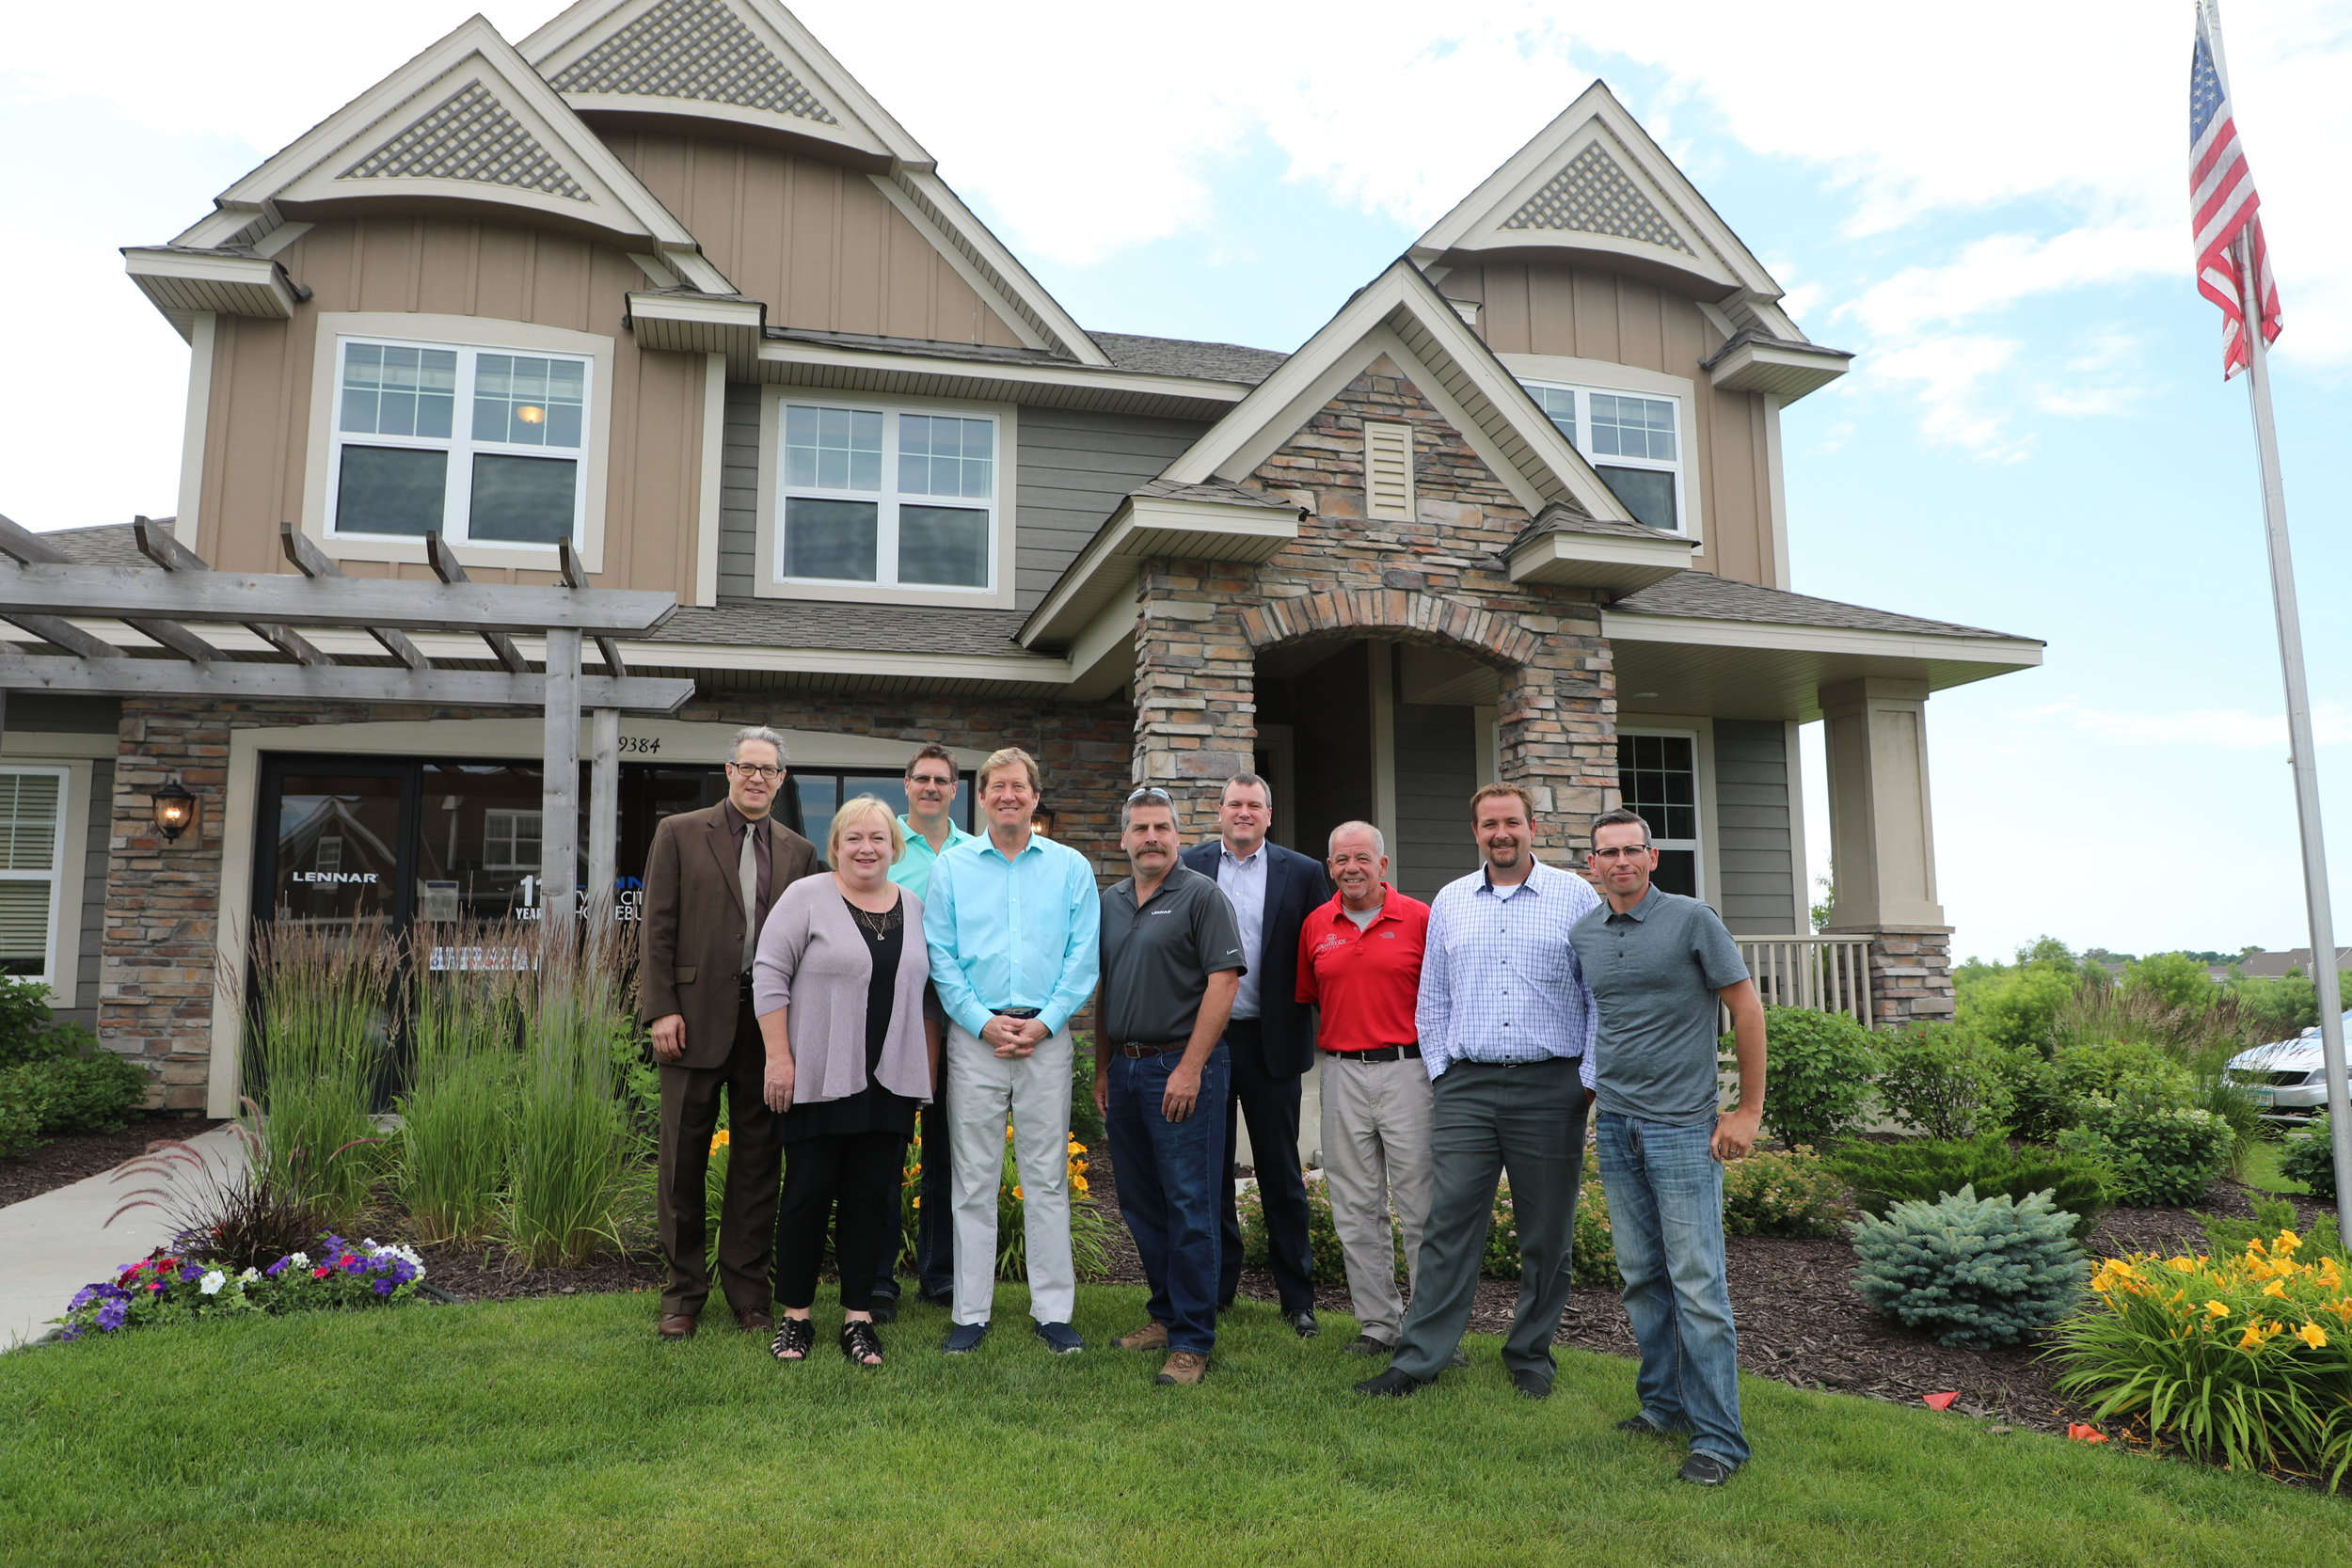 Housing First Minnesota members pose for a picture with Congressman Jason Lewis (CD2-R) outside a Lennar Minnesota model home in Lakeville, MN.